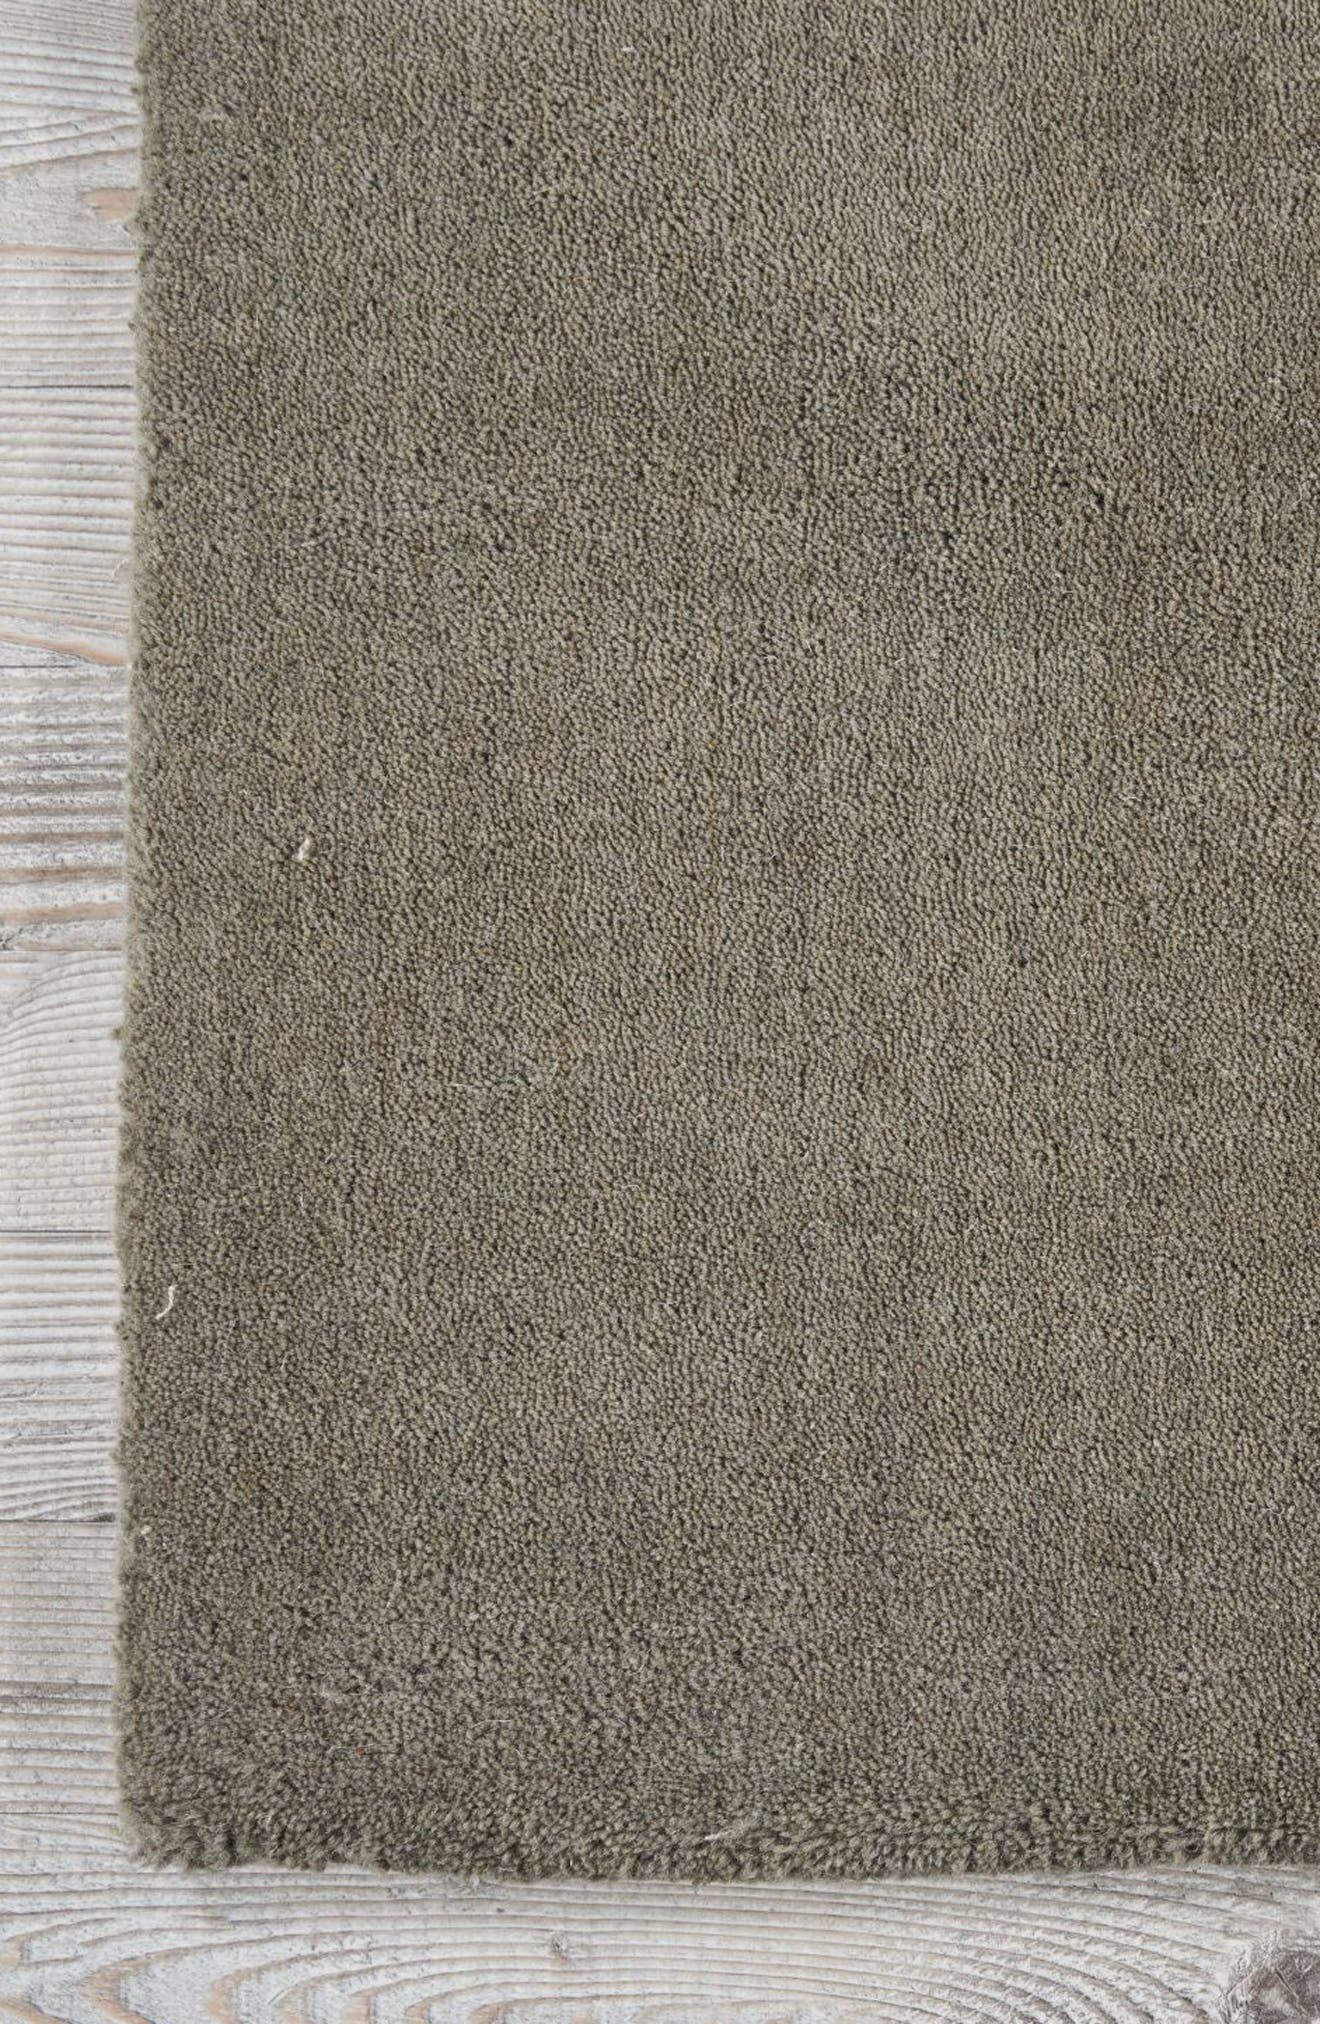 Vale Handwoven Area Rug,                             Alternate thumbnail 2, color,                             020